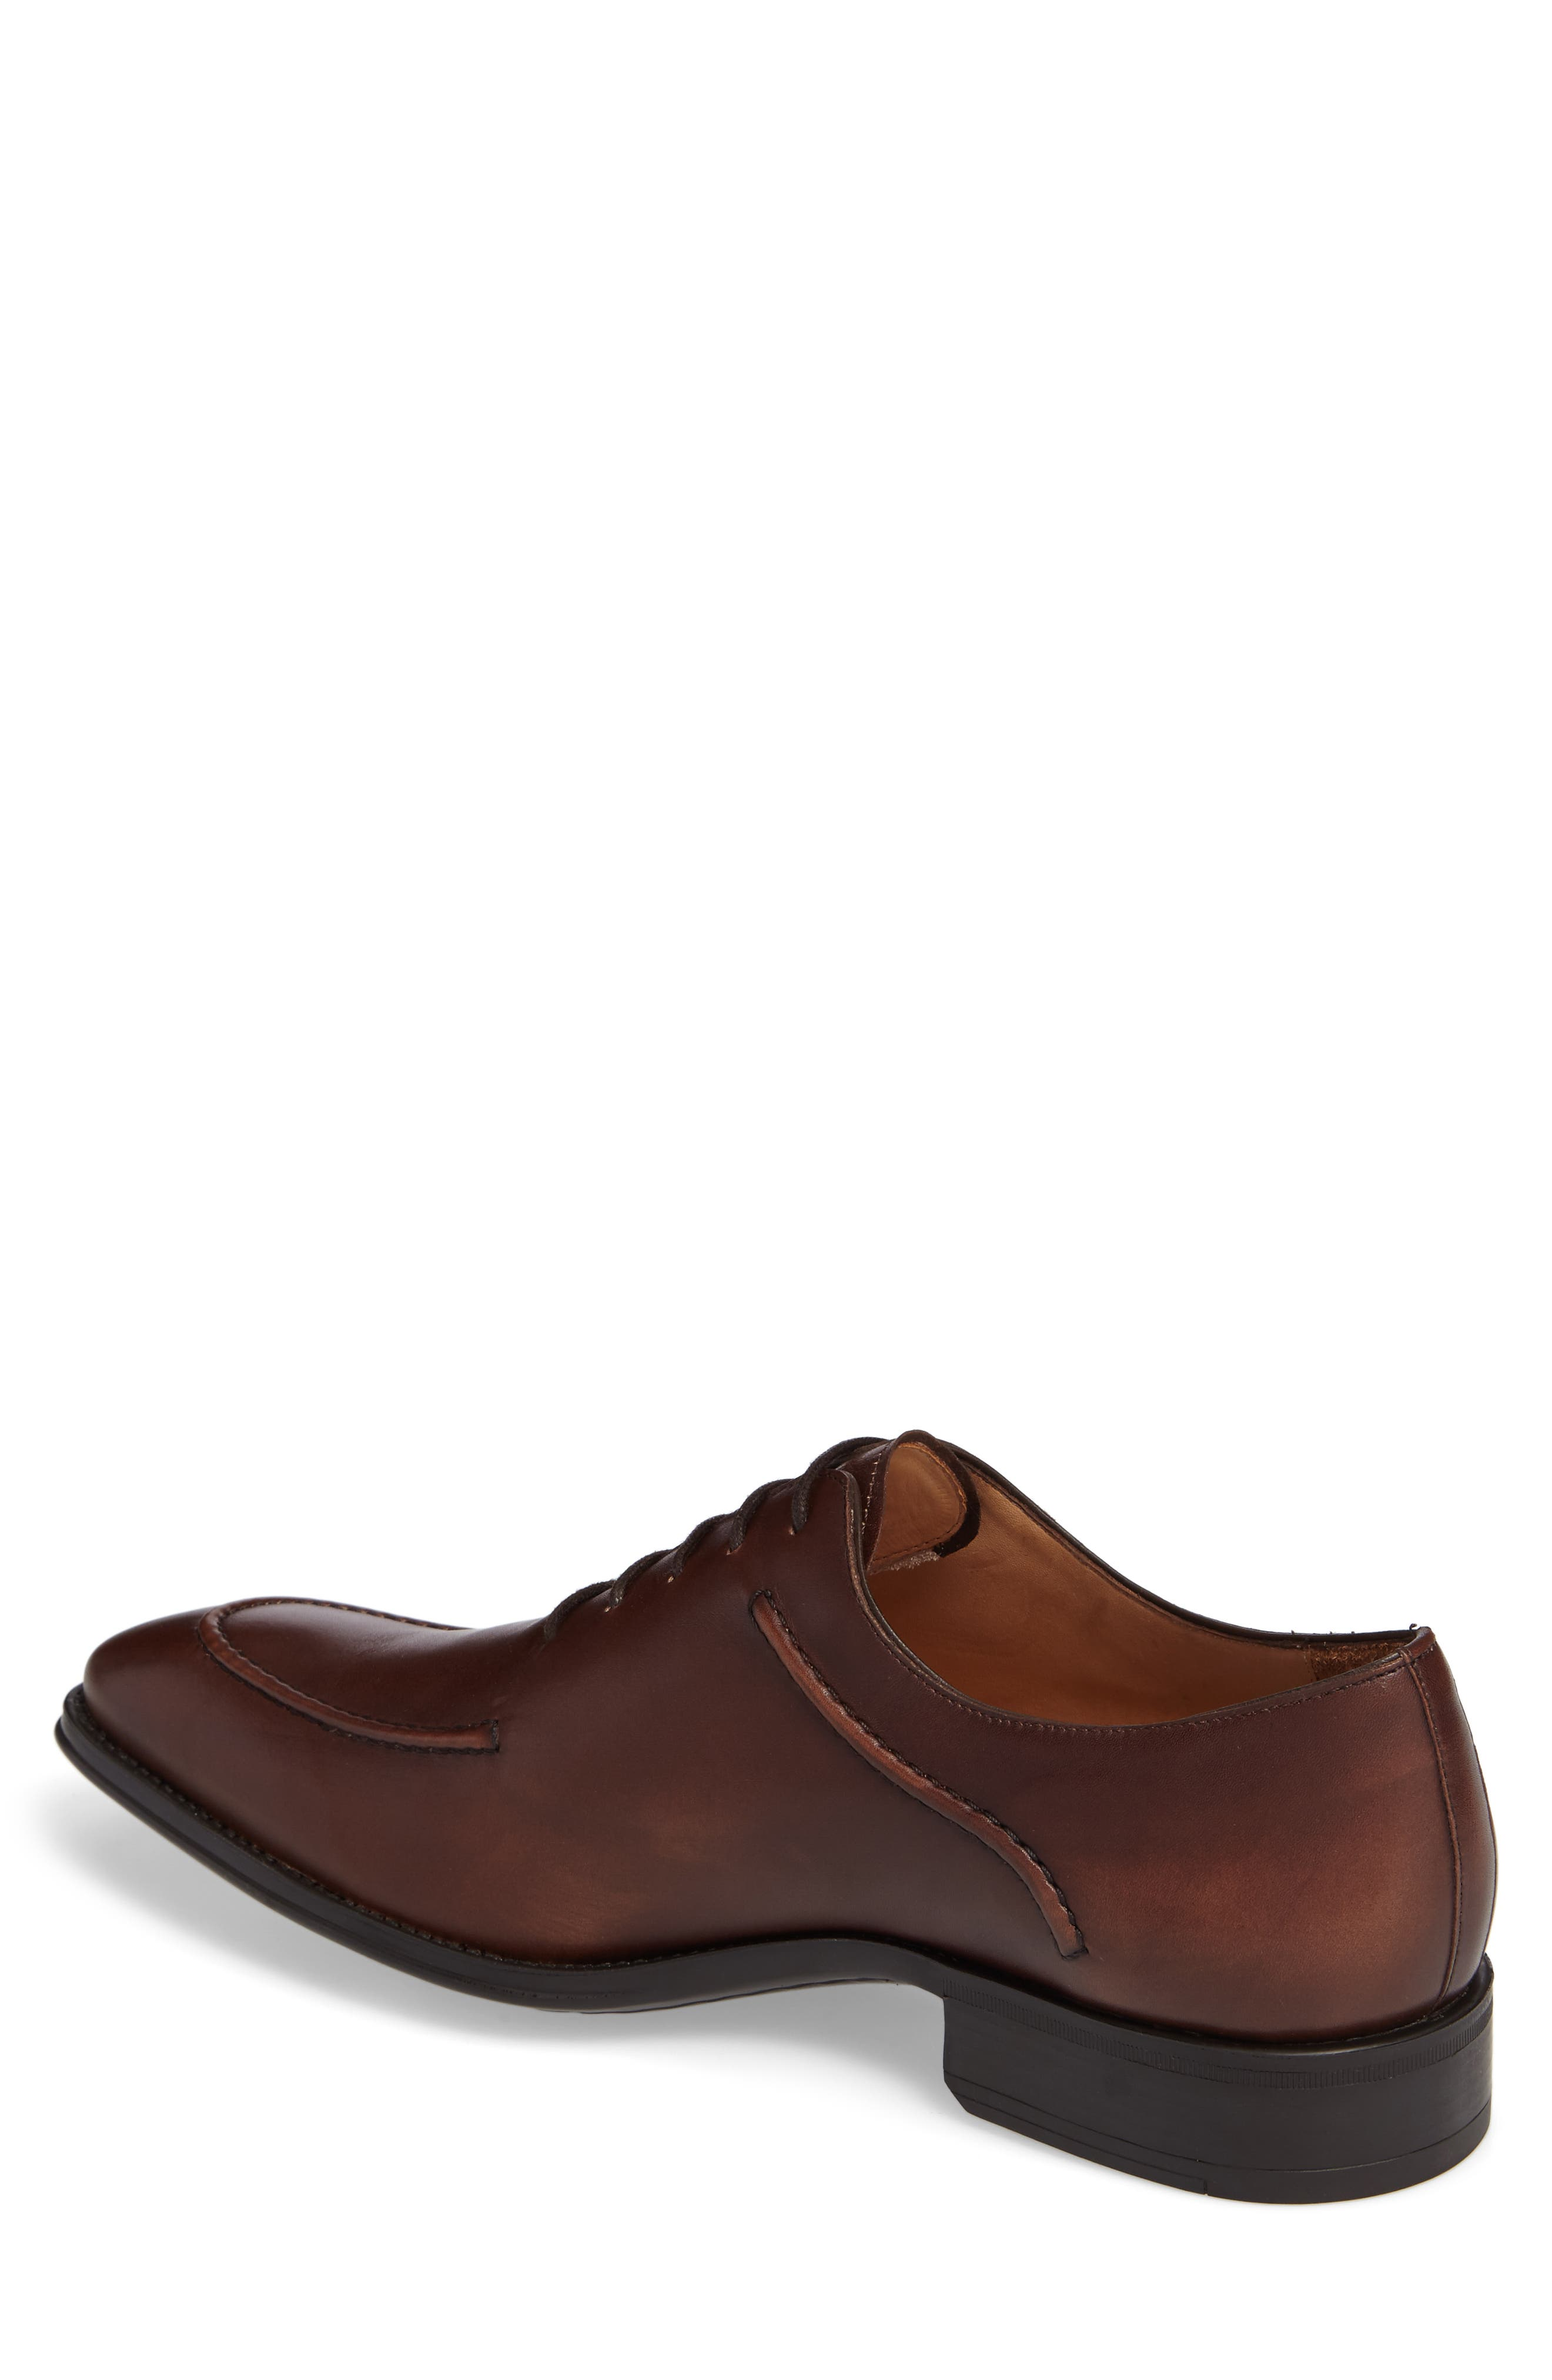 Velez Moc Toe Oxford,                             Alternate thumbnail 2, color,                             Brown Leather